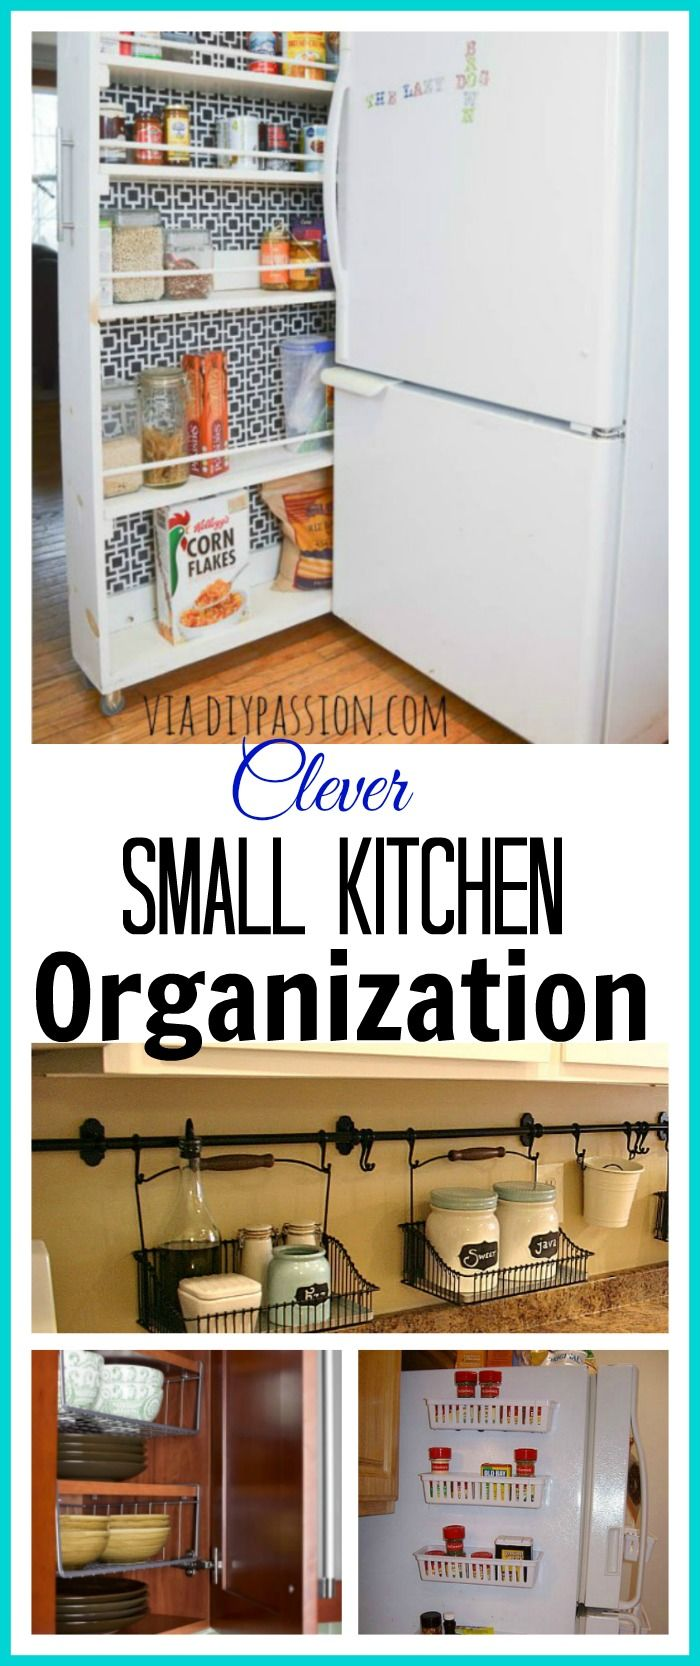 Great ideas for organizing your small kitchen and maximizing space!